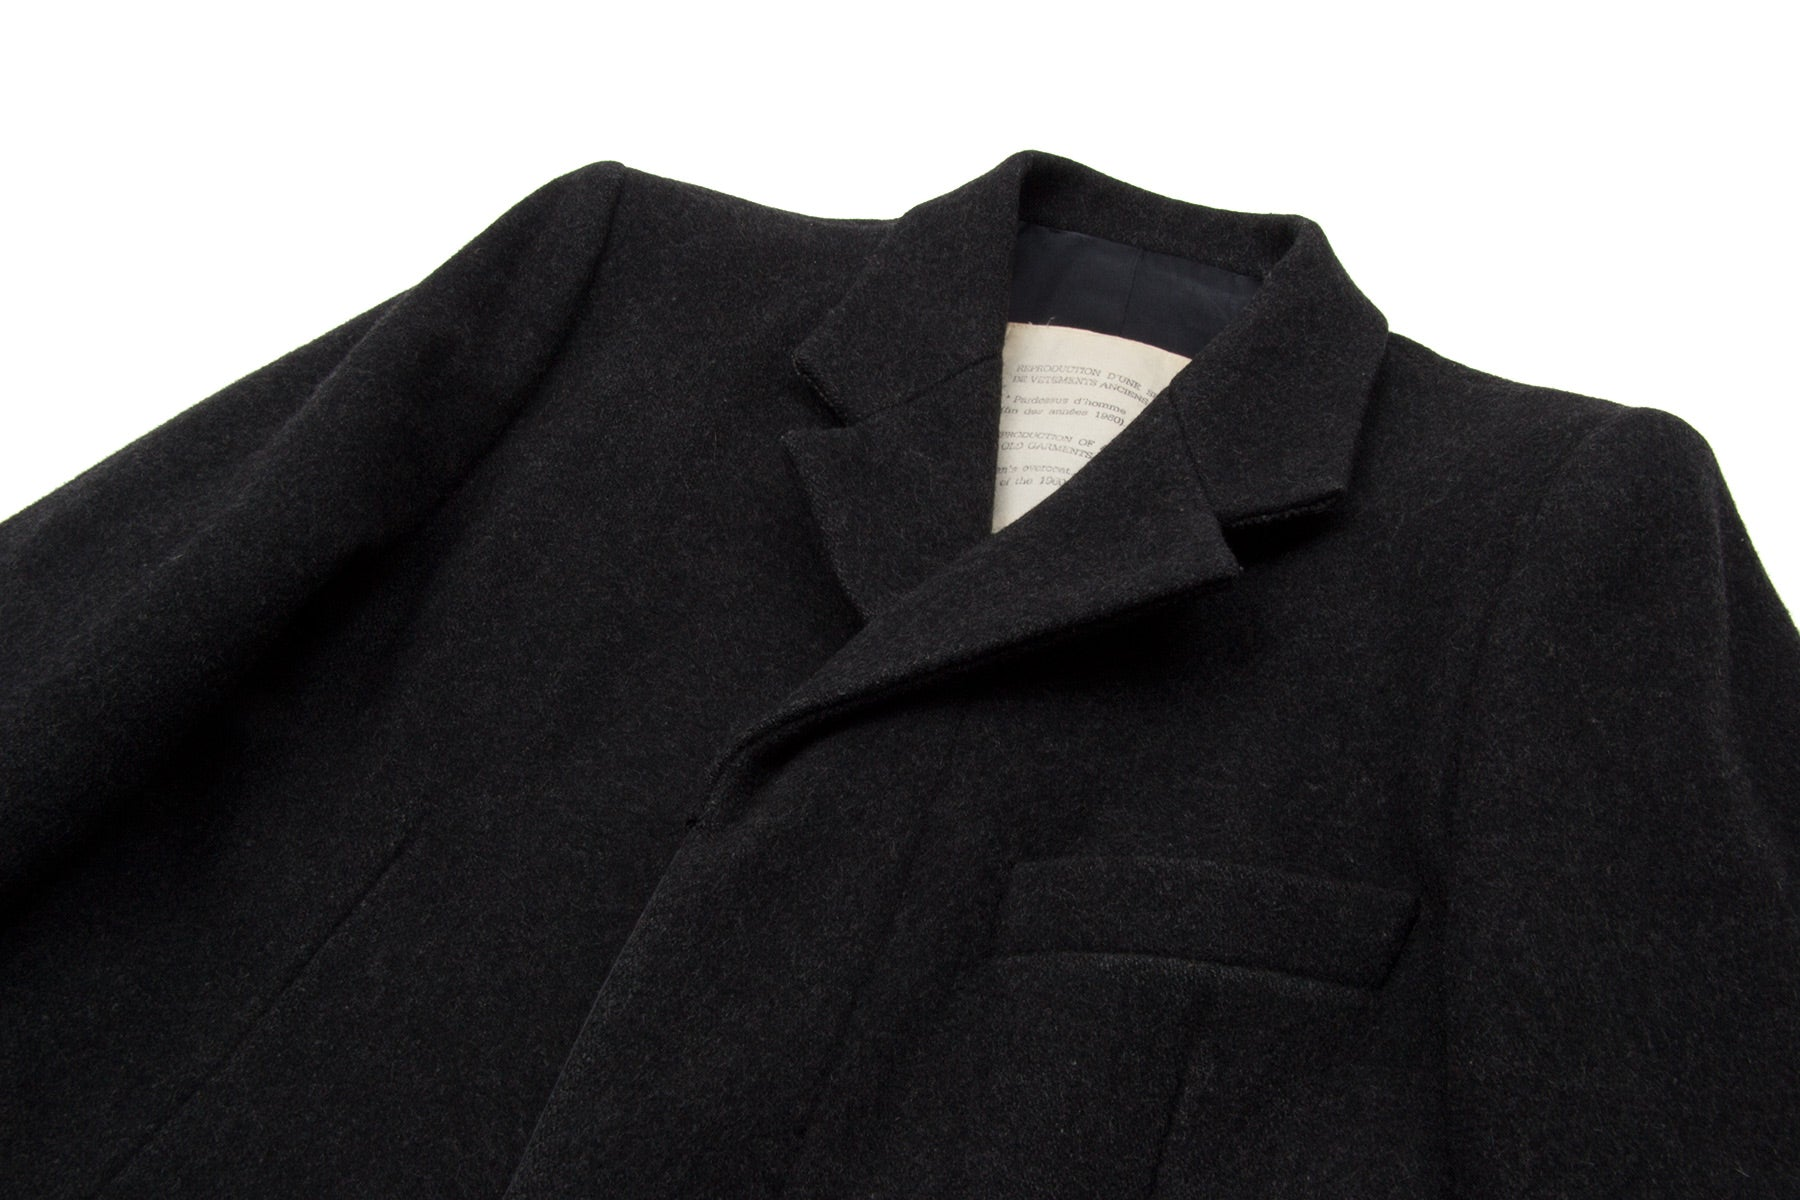 "1994 A/W REPRODUCTION OF A SERIES OF OLD GARMENTS ""MAN'S OVERCOAT"""